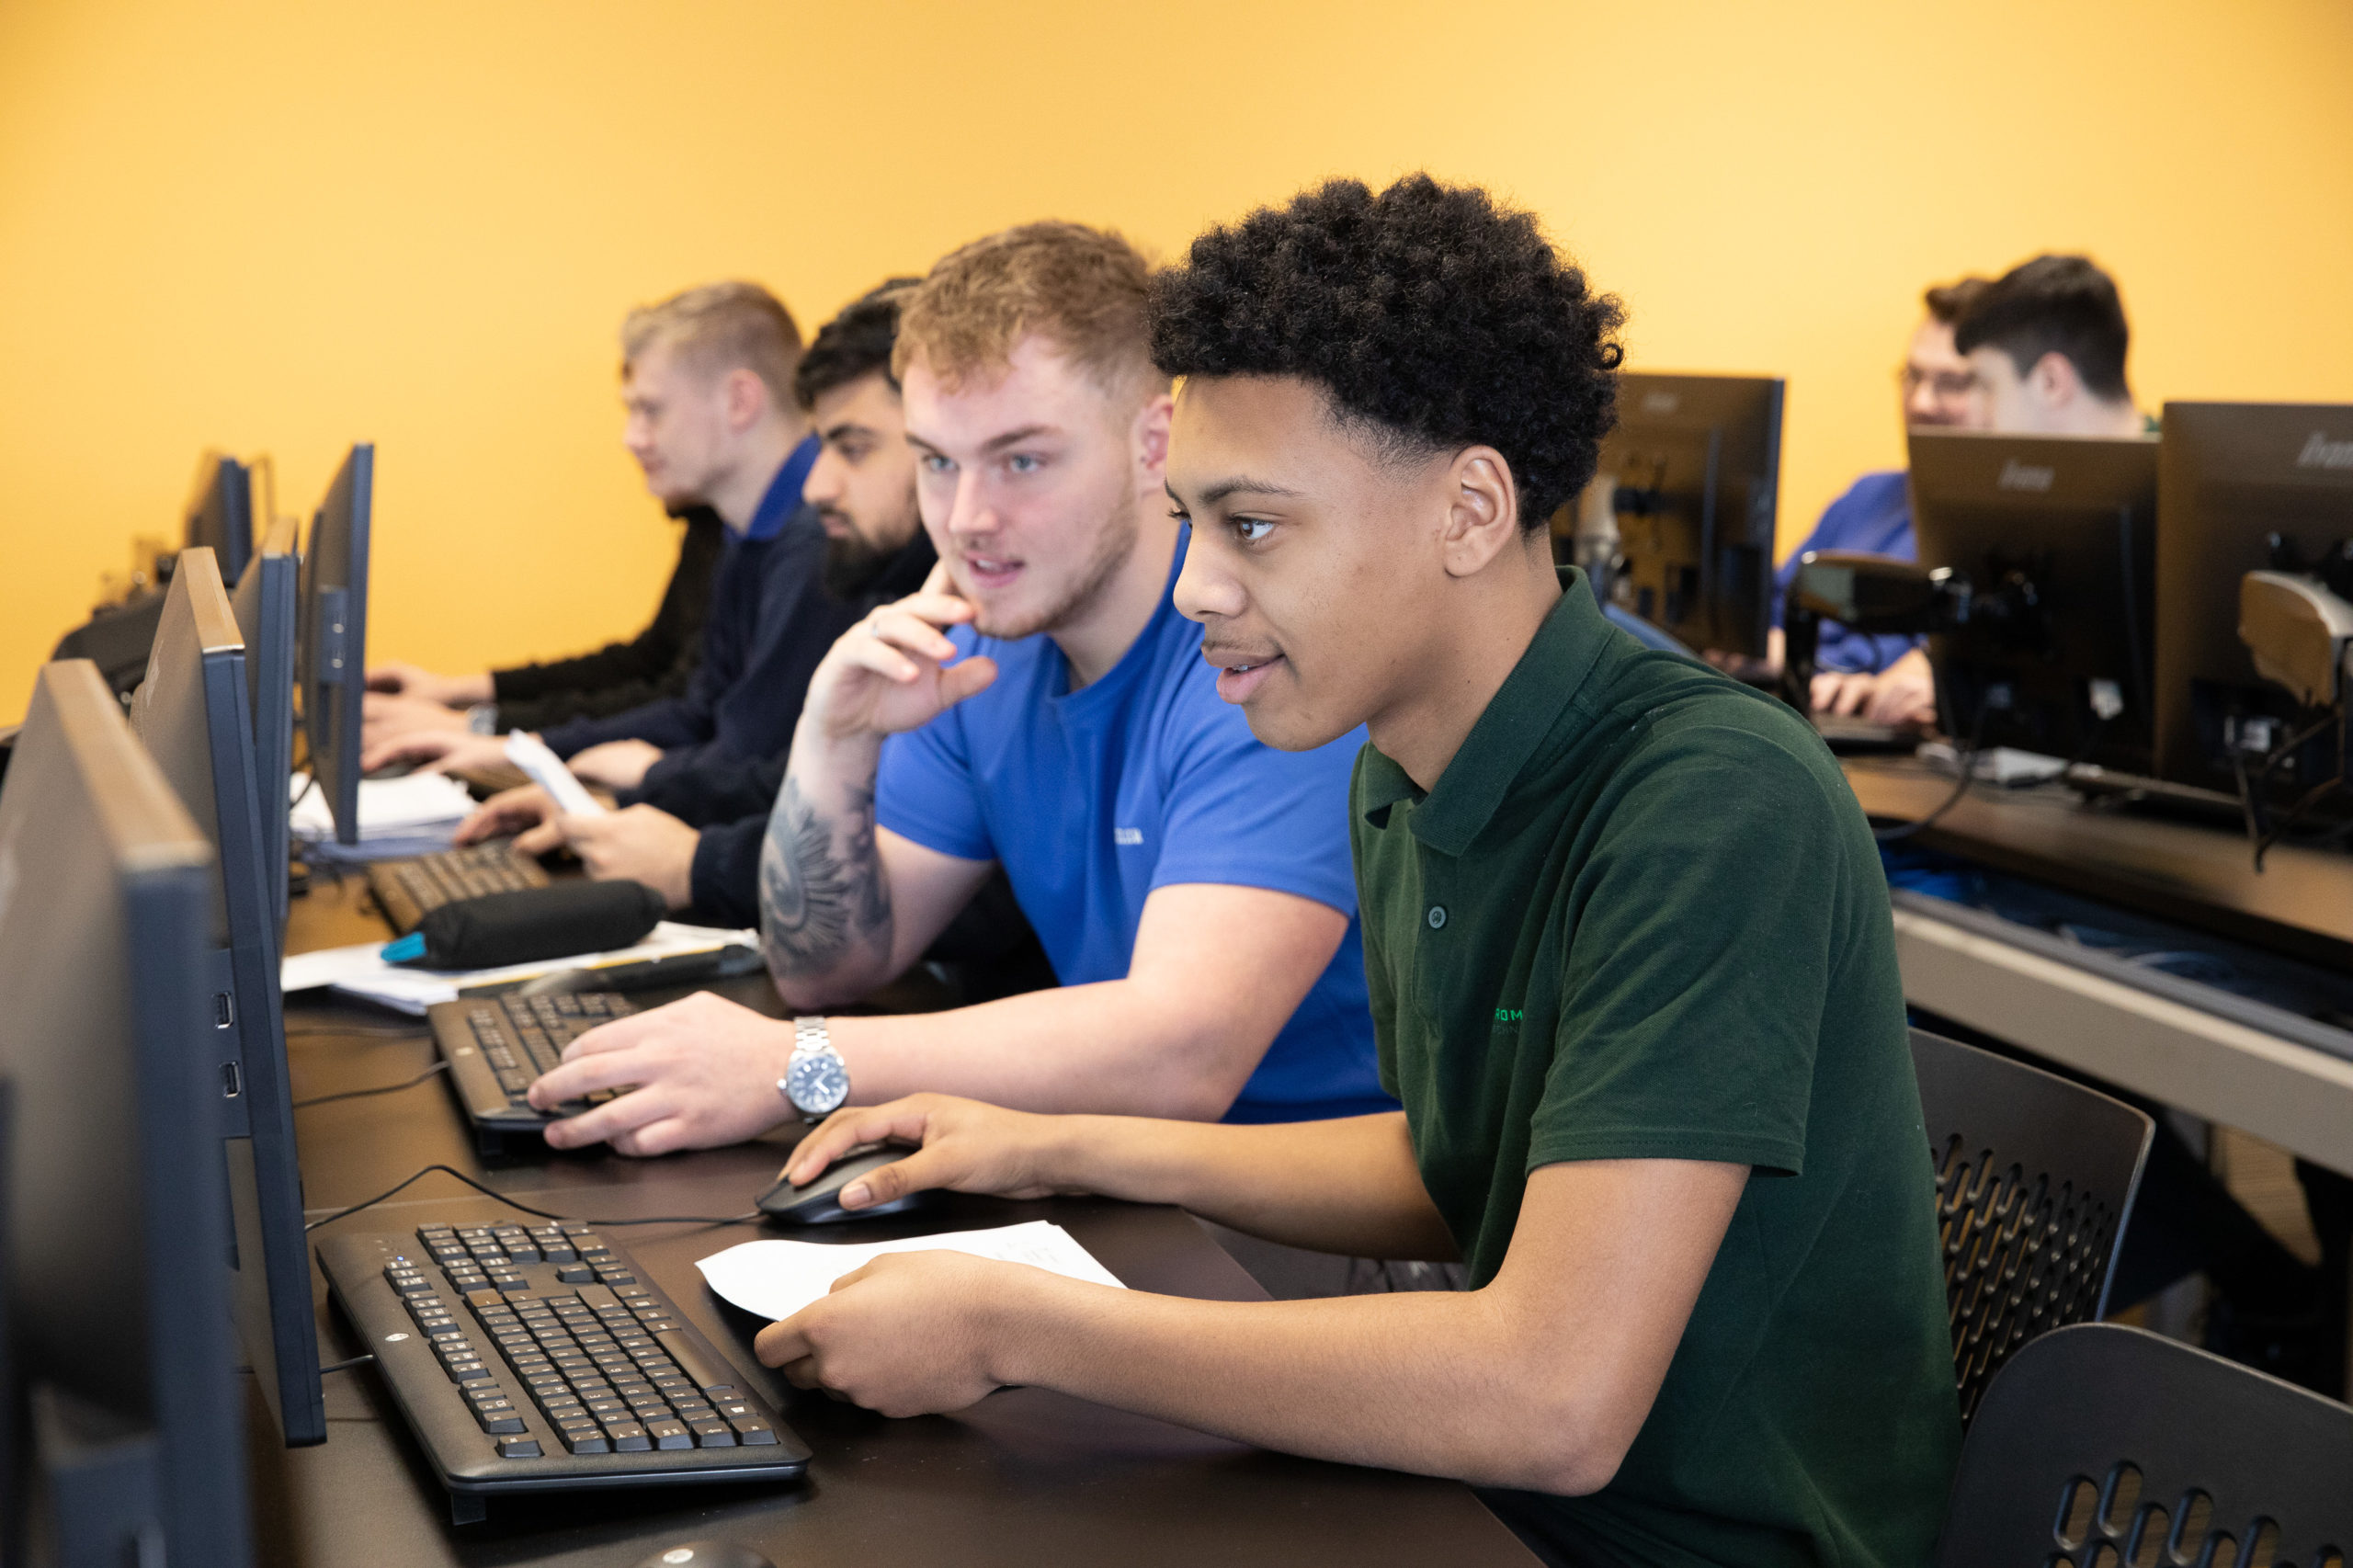 Engineering Apprentices learning CAD skills